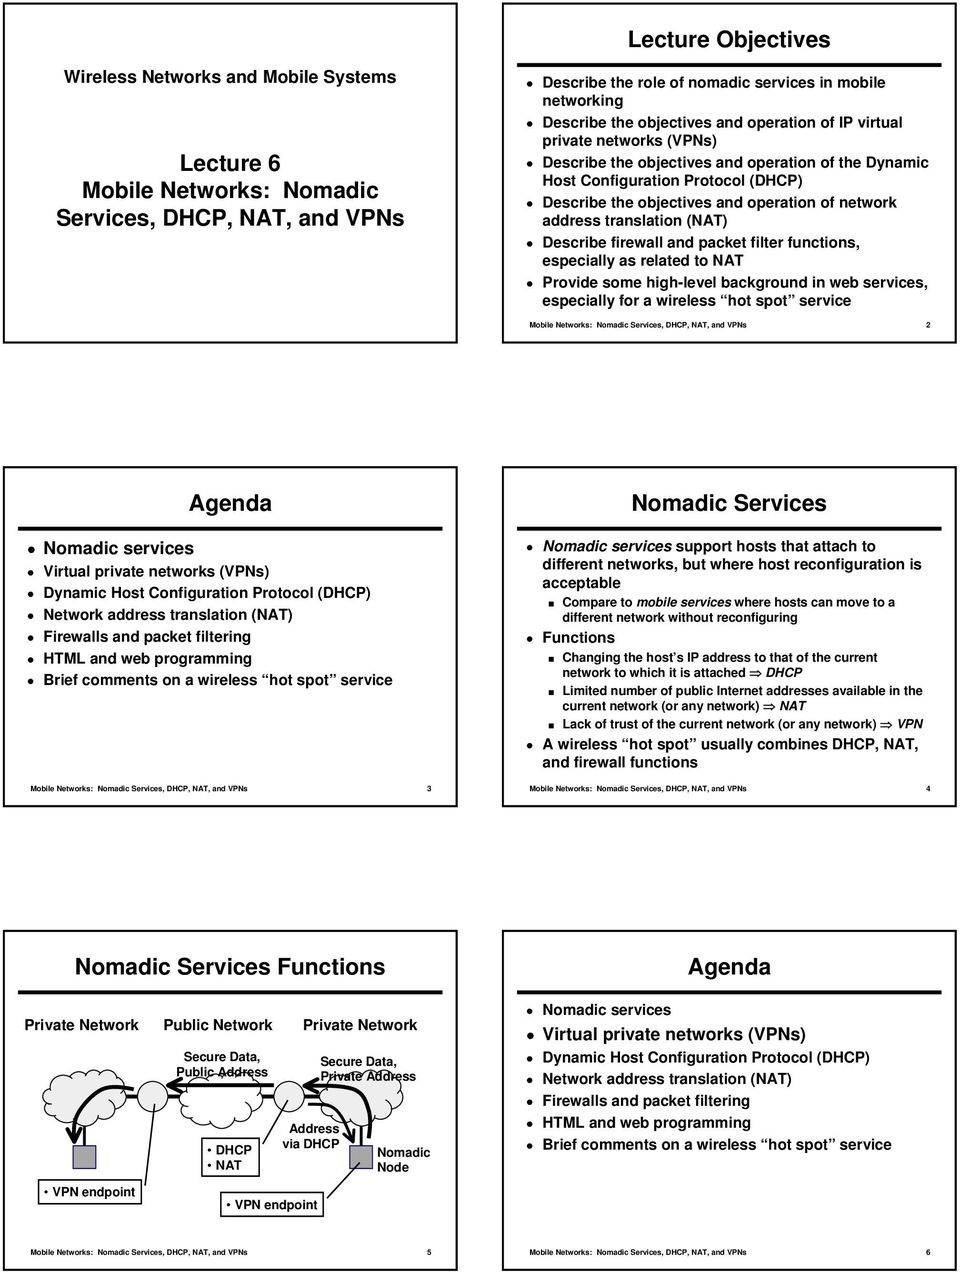 Lecture Objectives  Lecture 6 Mobile Networks: Nomadic Services